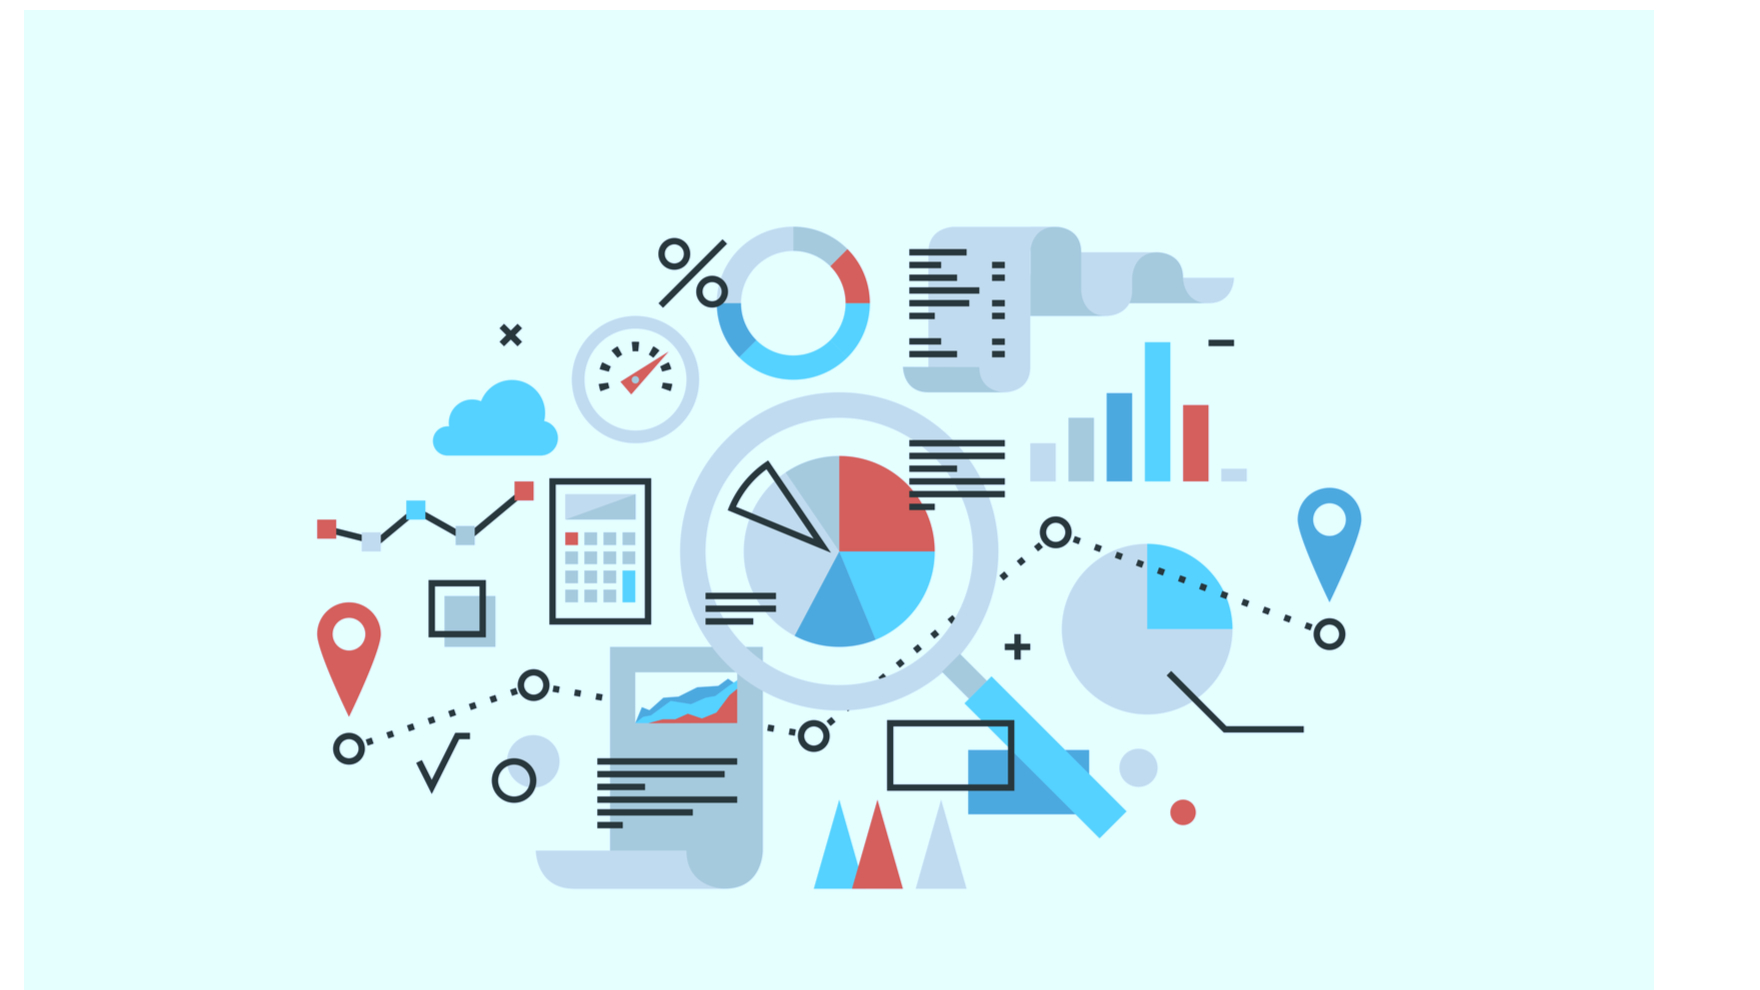 Is your organization ready to embrace digital analytics?